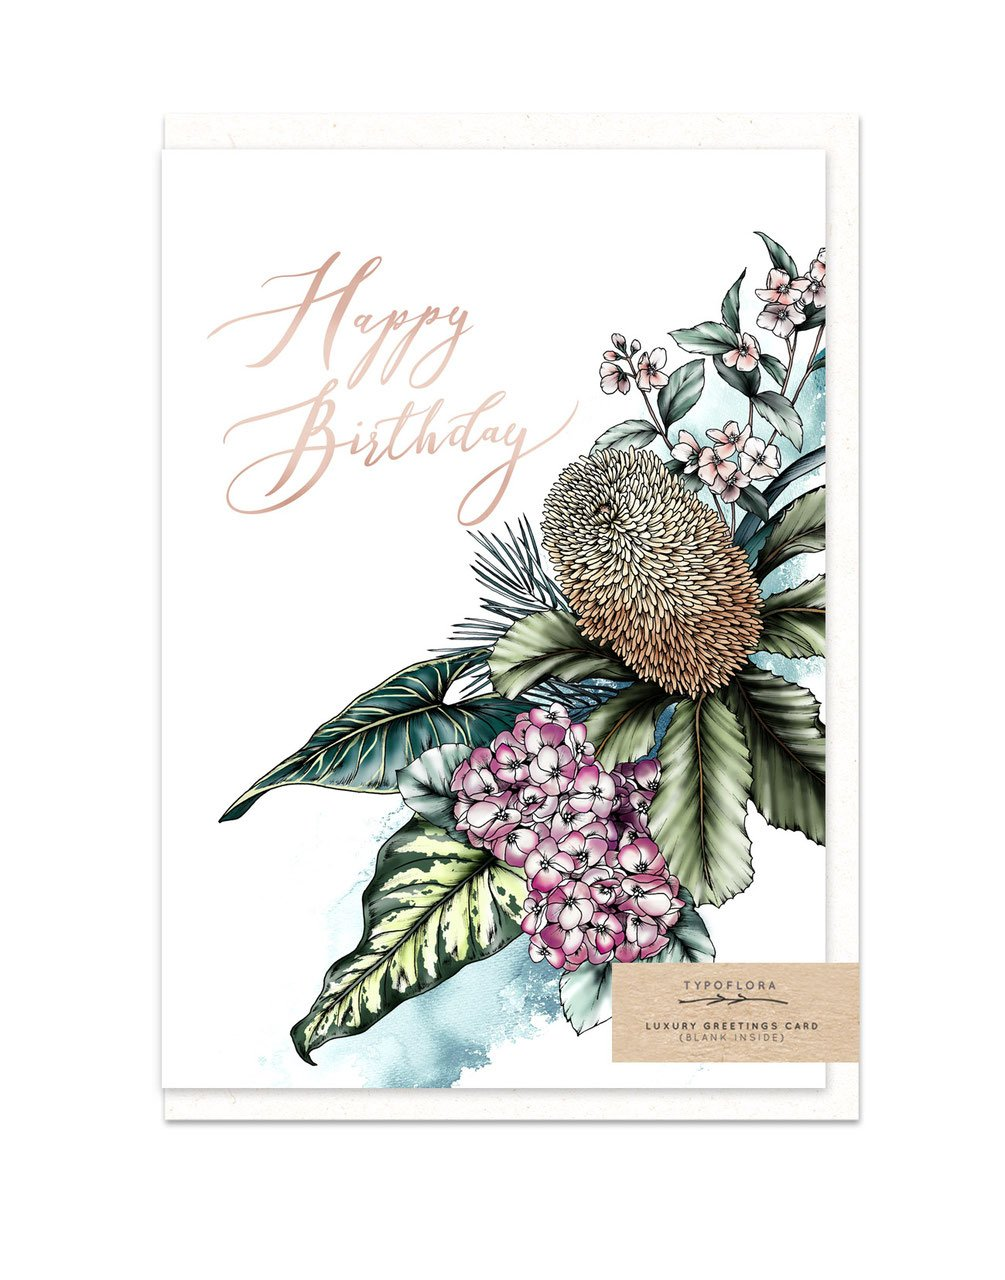 Typoflora Card - Banksia Birthday